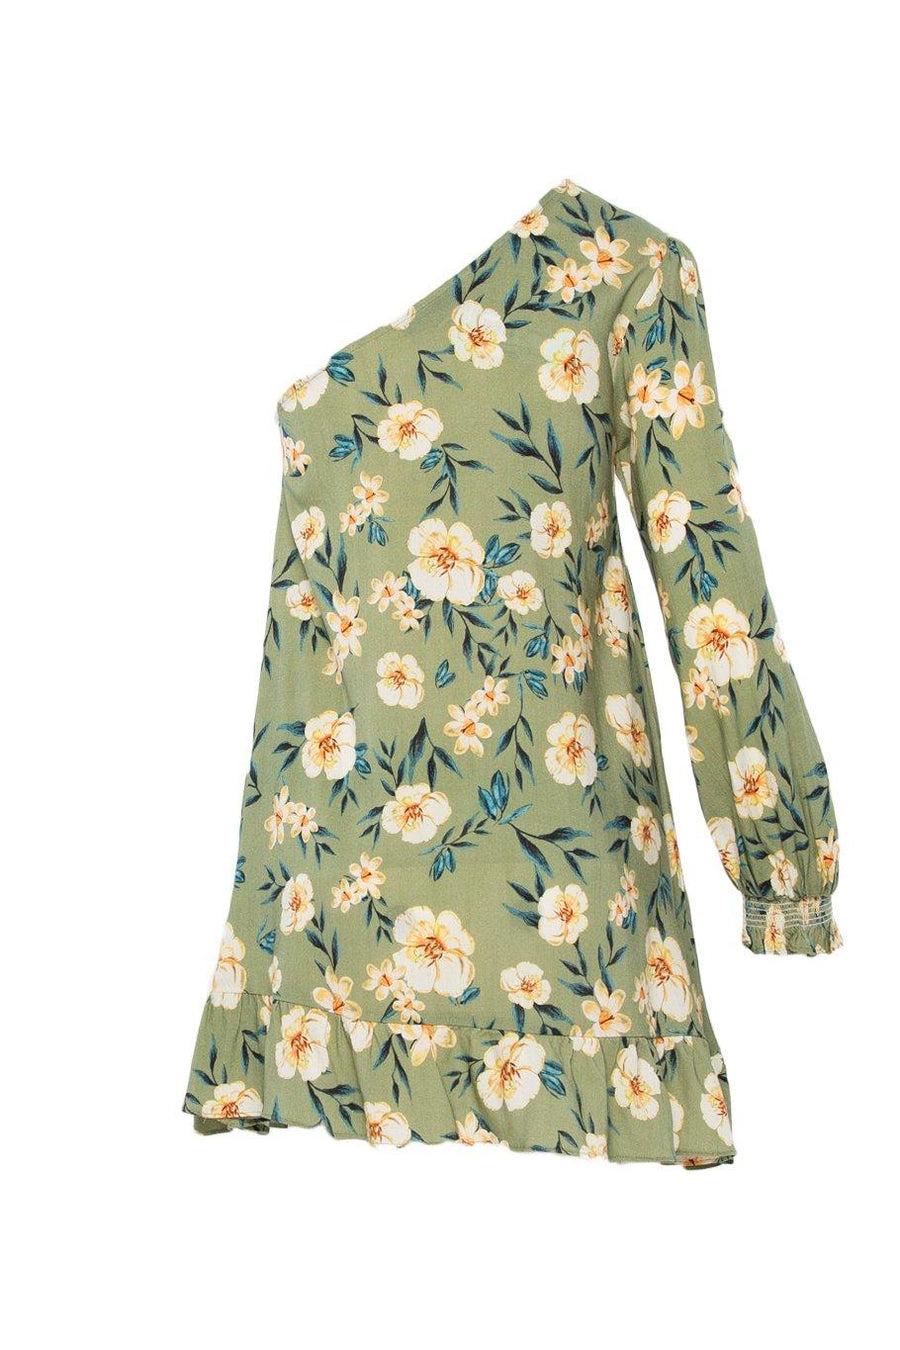 One Shoulder Dress - Green Floral